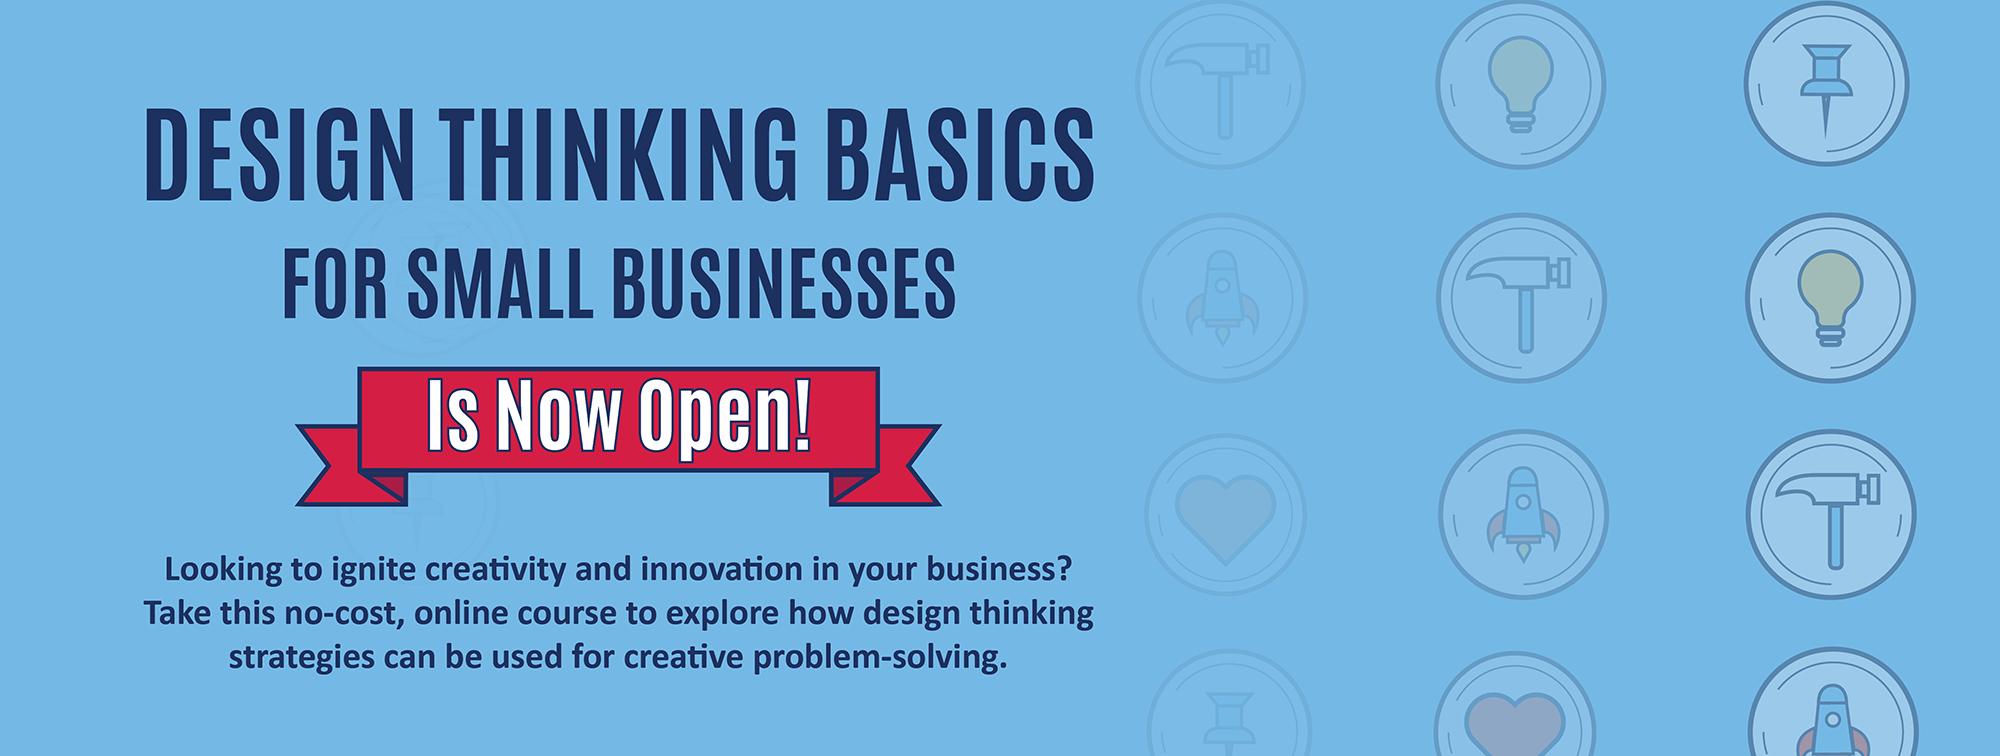 Take the Design Thinking Basics course to ignite creativity and innovation in your business